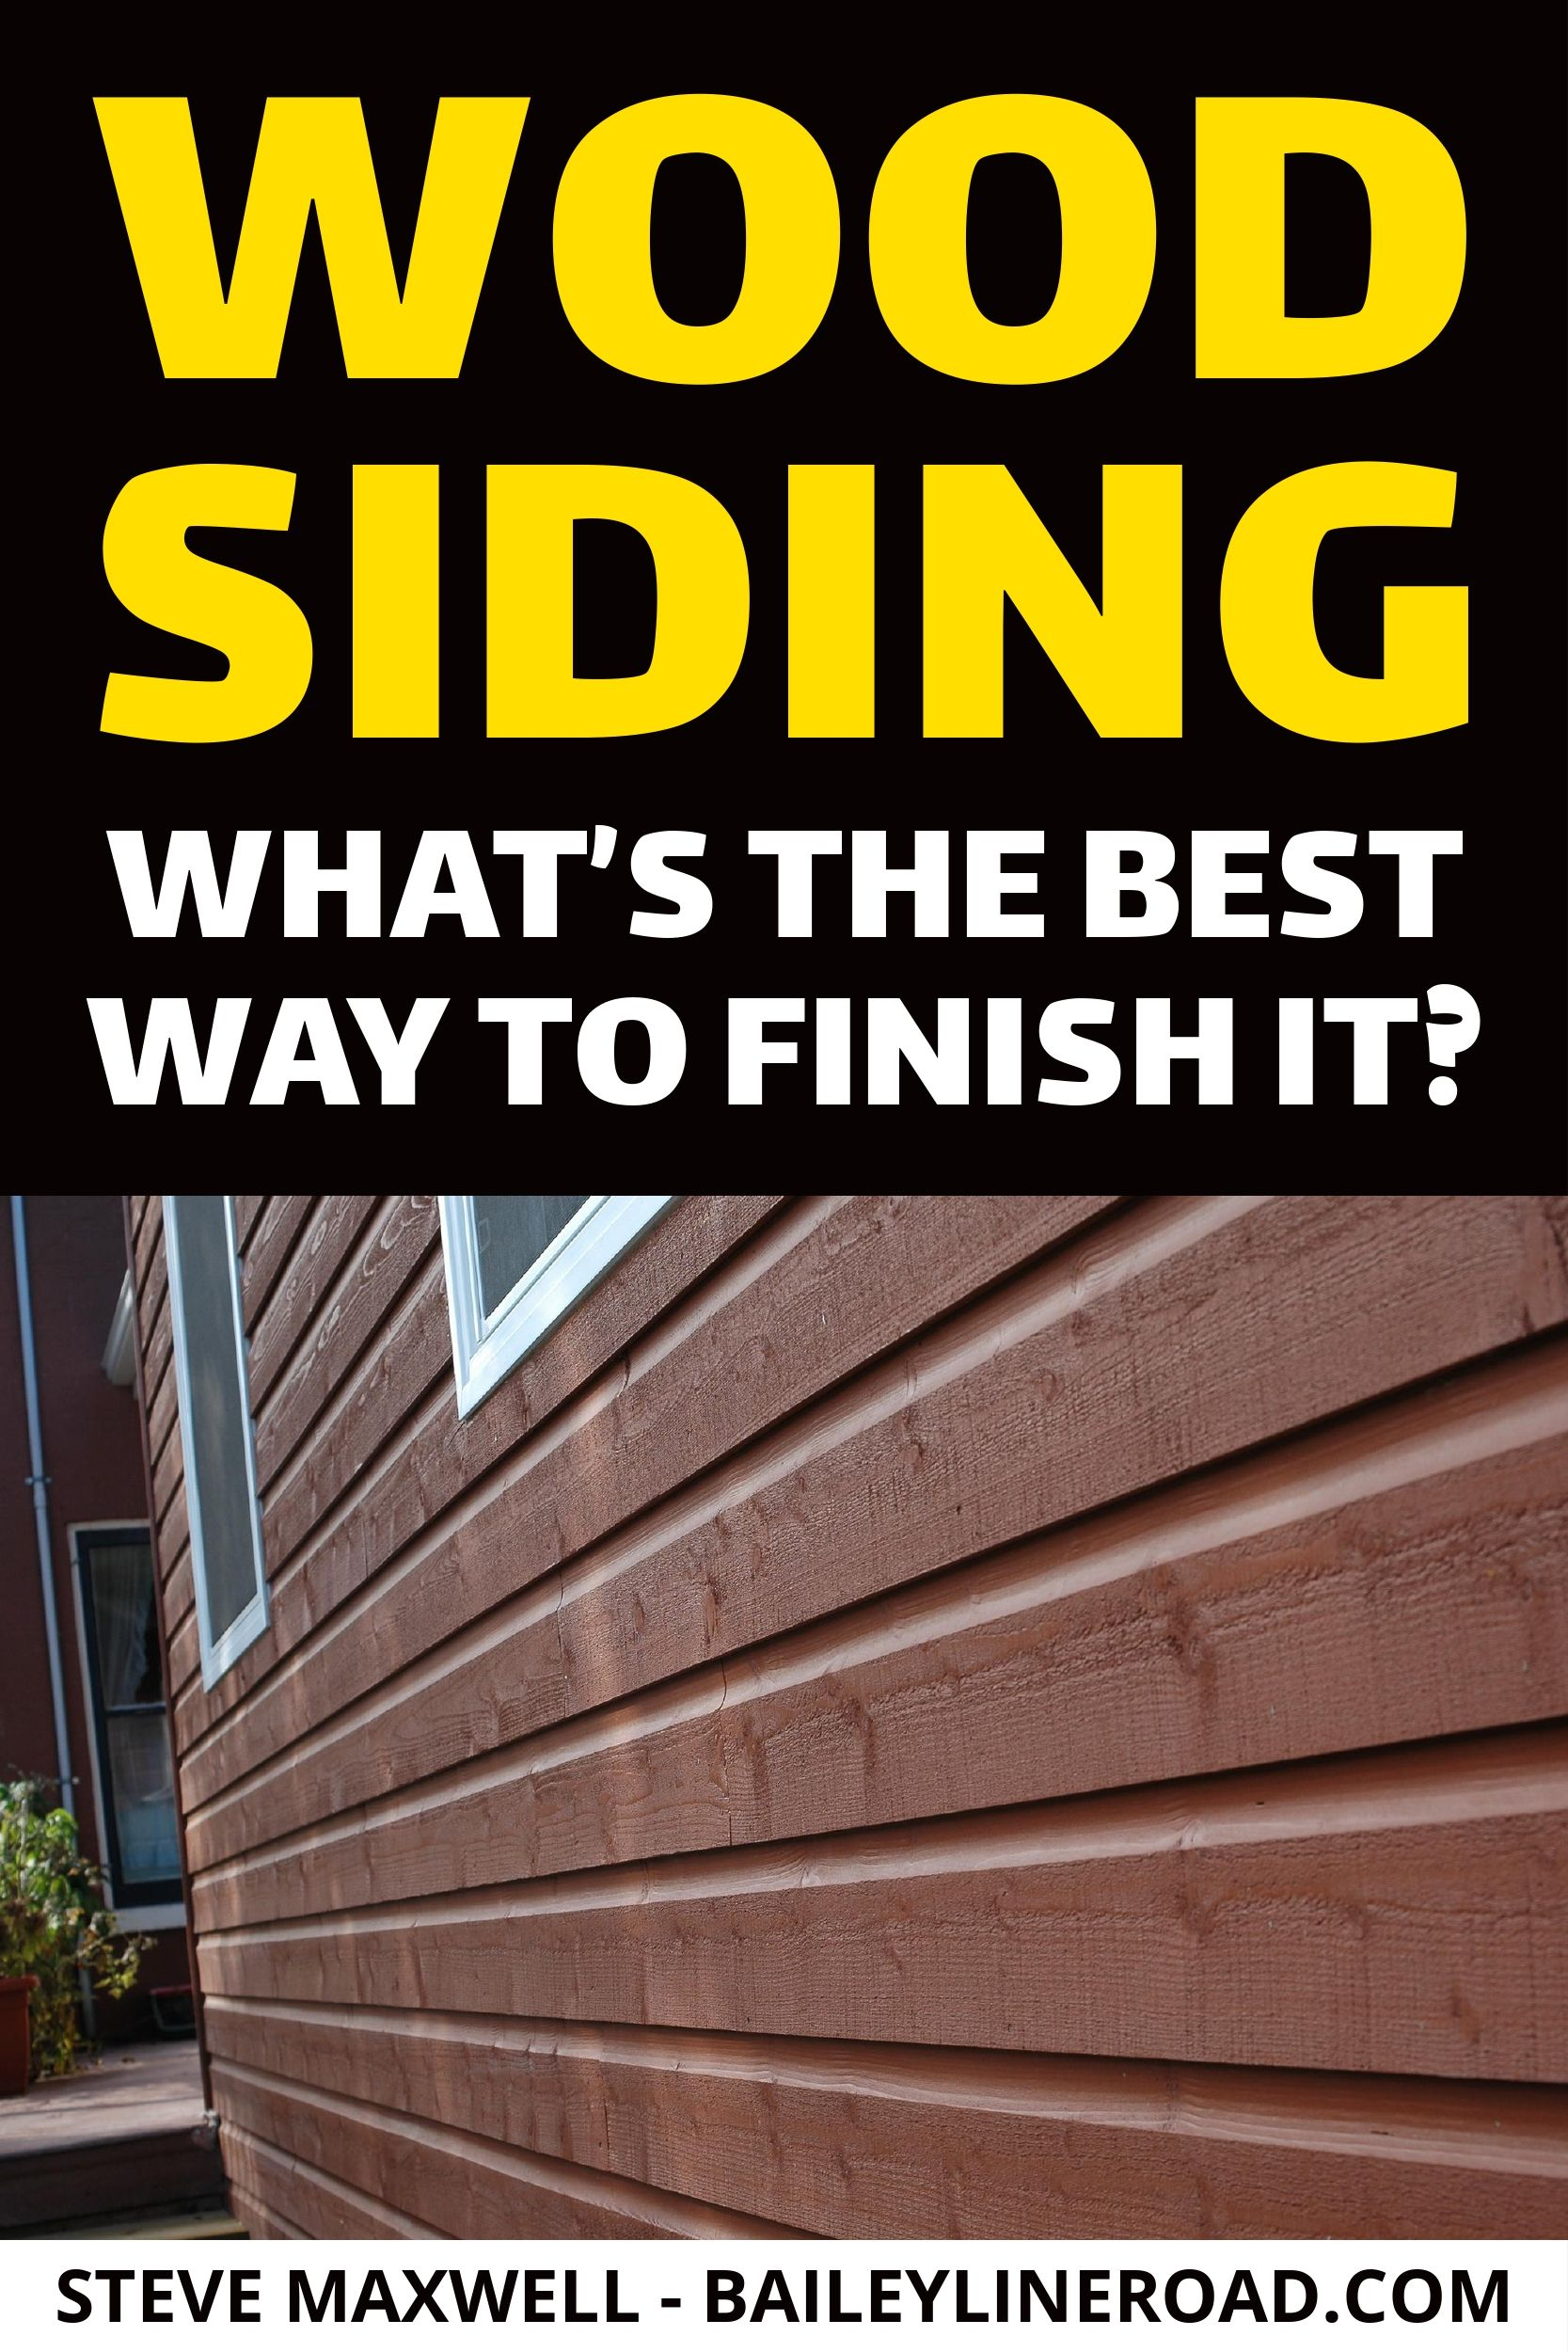 Wood Siding What S The Best Way To Finish It Baileylineroad In 2020 Wood Siding Siding Cedar Siding